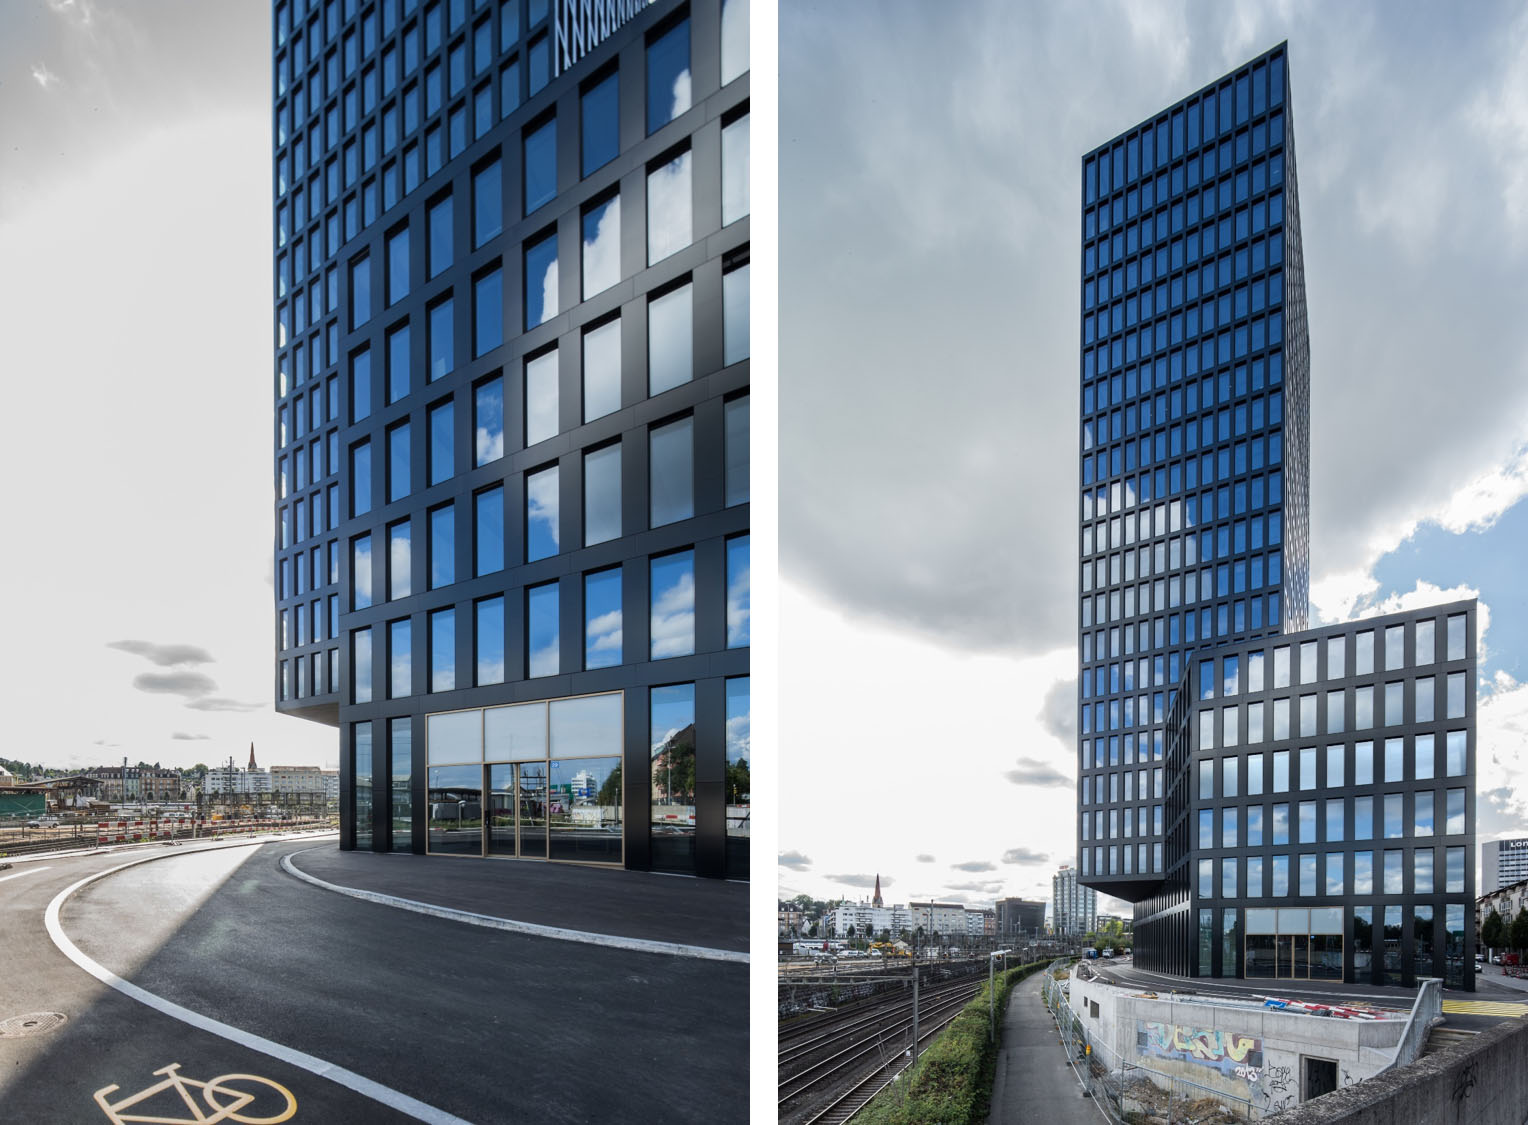 Figure 5: Grosspeter Tower in Basel. Showing a seemingless integration of PV modules into the facade of a high-rise building. Solar façade planning by energiebüro ag. ©Adriano Biondo